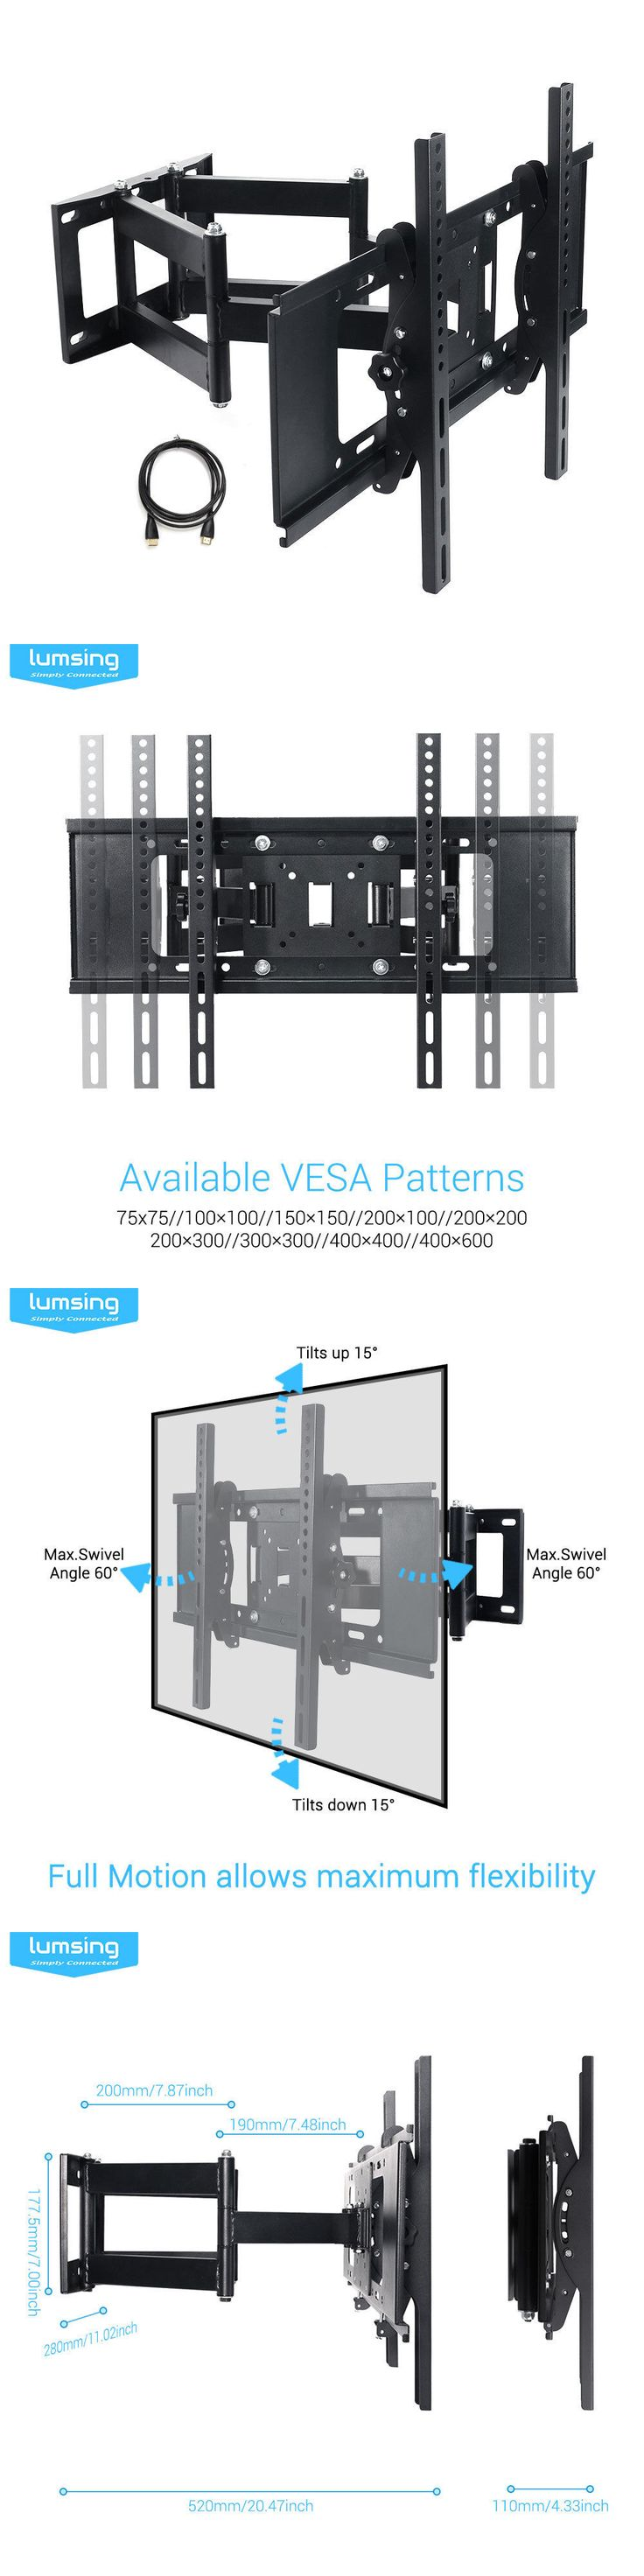 TV Mounts and Brackets: Full Motion Tv Wall Mount 32 37 40 42 50 55 60 65 70 For Samsung Vizio Lg Sony -> BUY IT NOW ONLY: $36.99 on eBay!